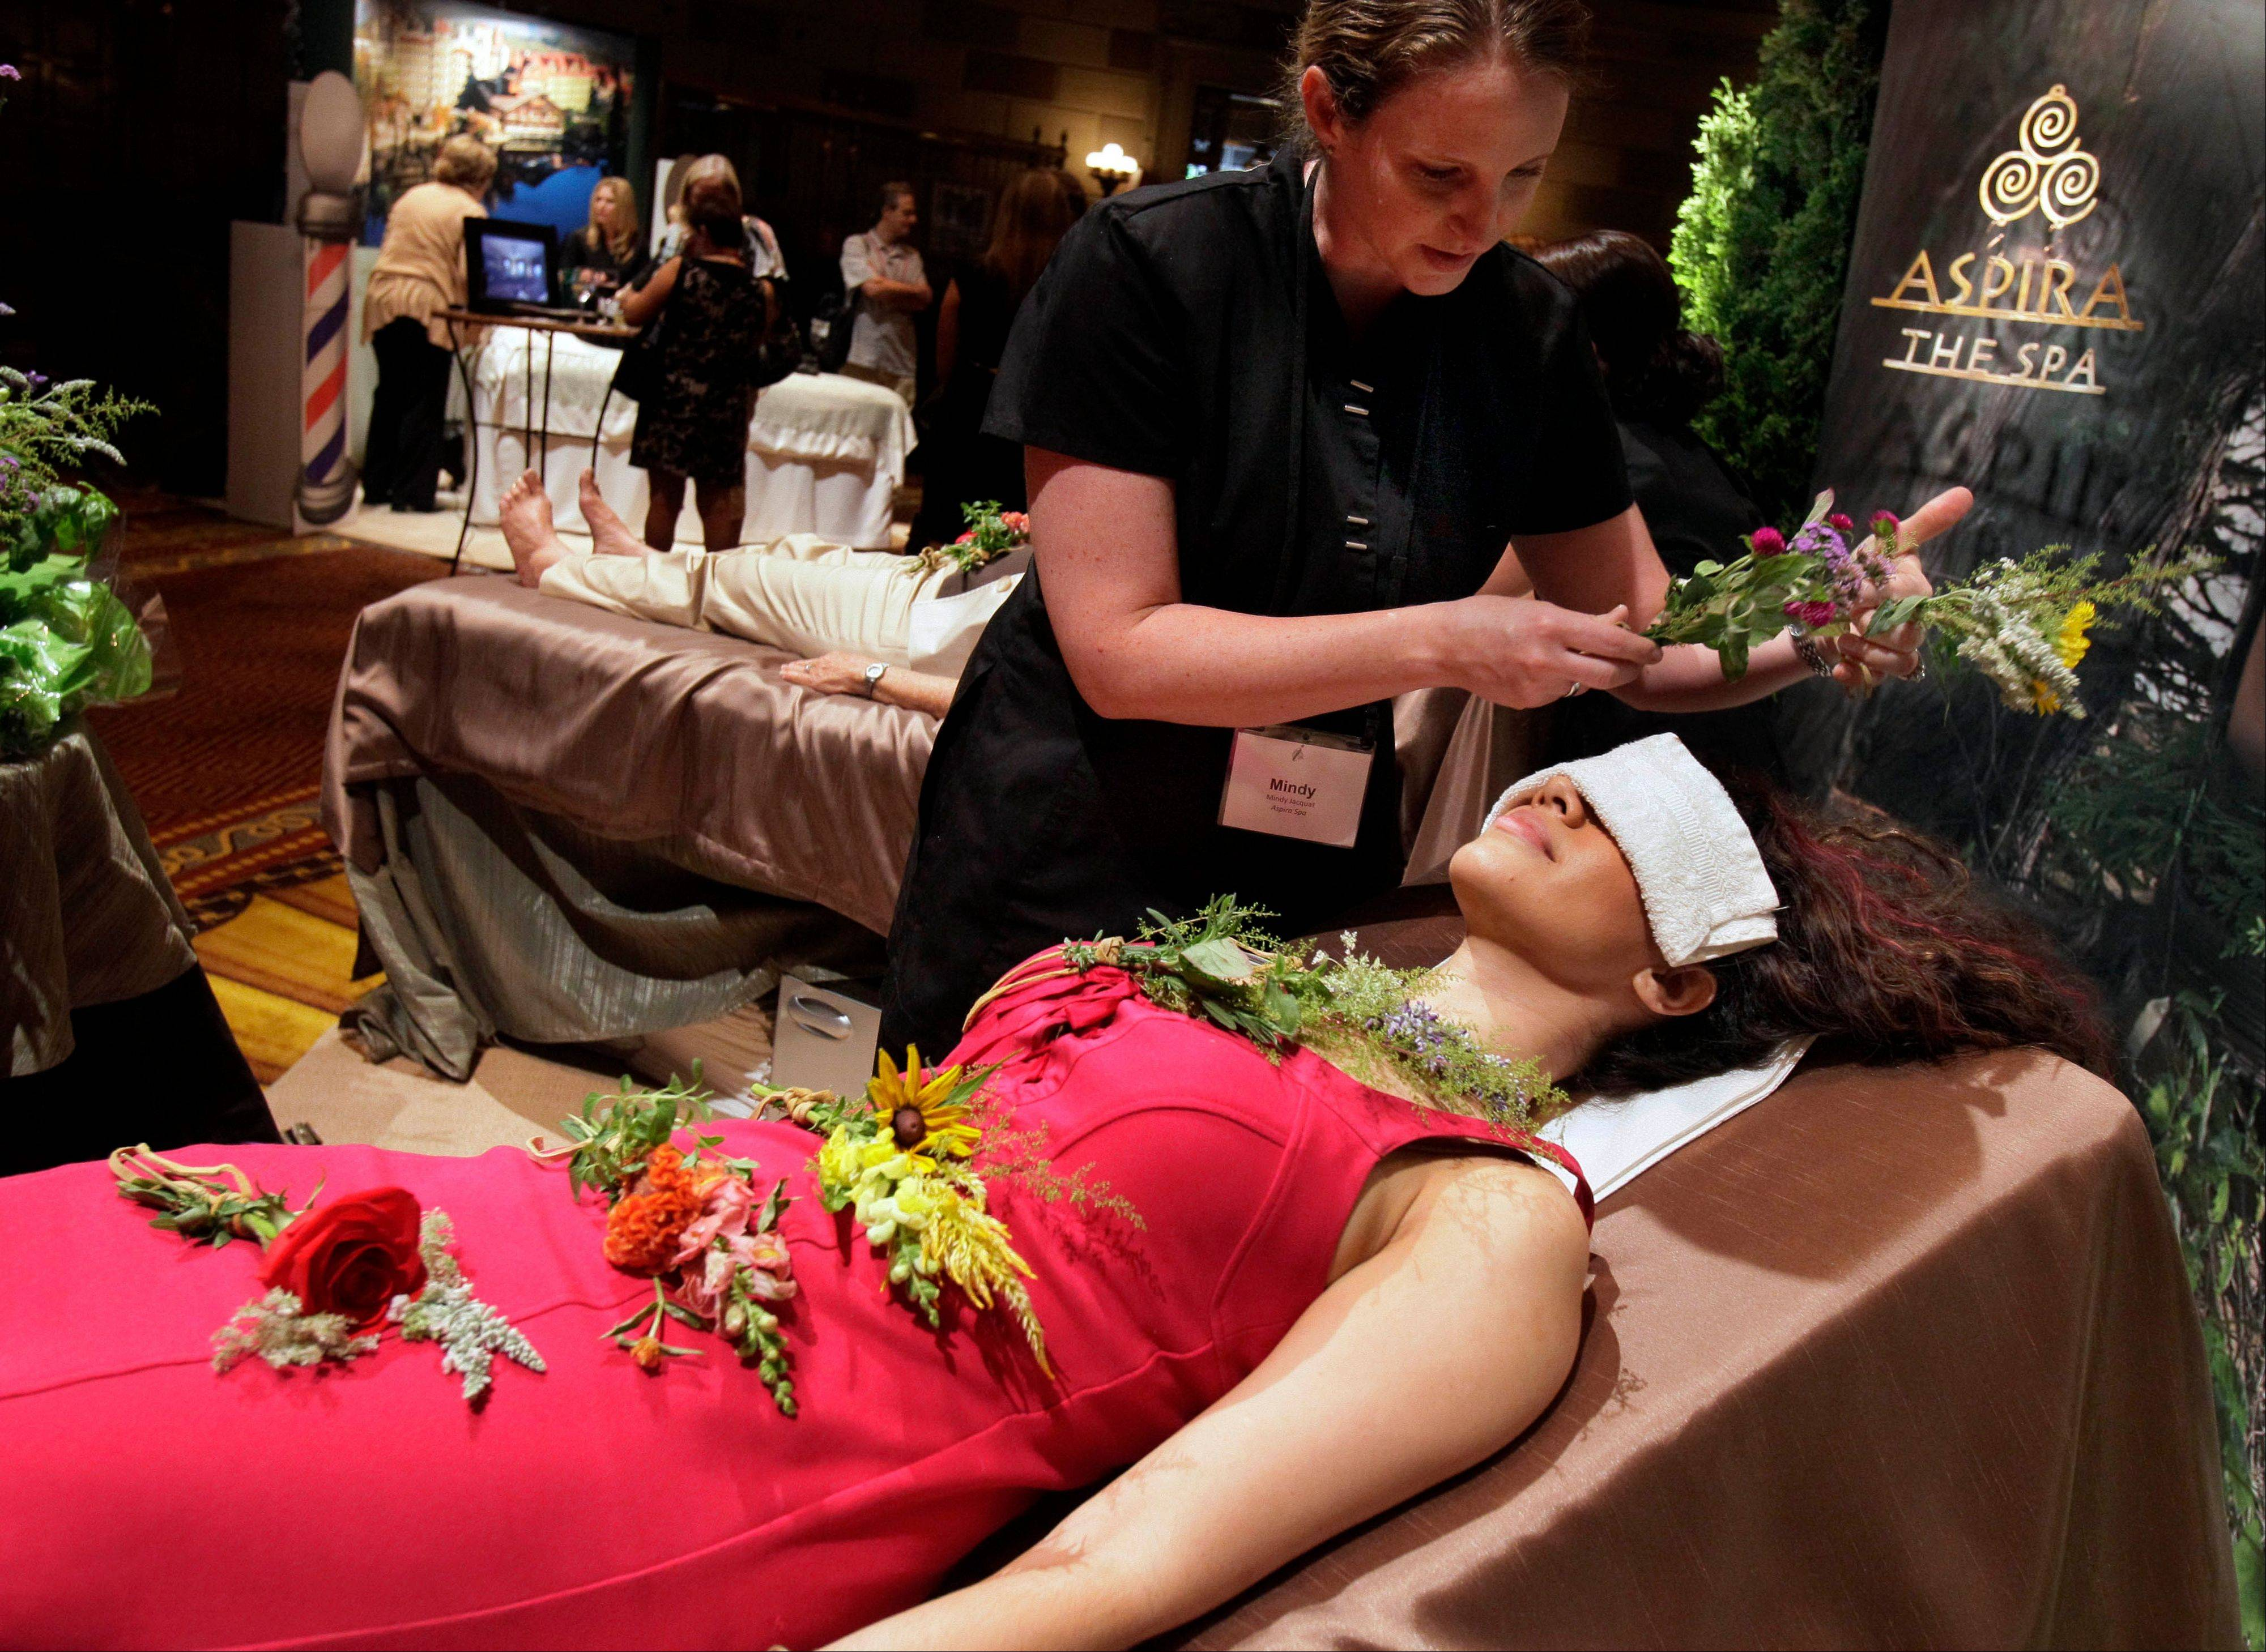 A woman as she receives a Chakra Garden Massage at The Osthoff Resort, in Elkhart Lake, Wis. Hyperlocal ingredients, a blend of high tech and tradition, and treatments focusing not just on skin, nails and hair but also on remedying stress and pain are some of the latest trends turning up at spas.